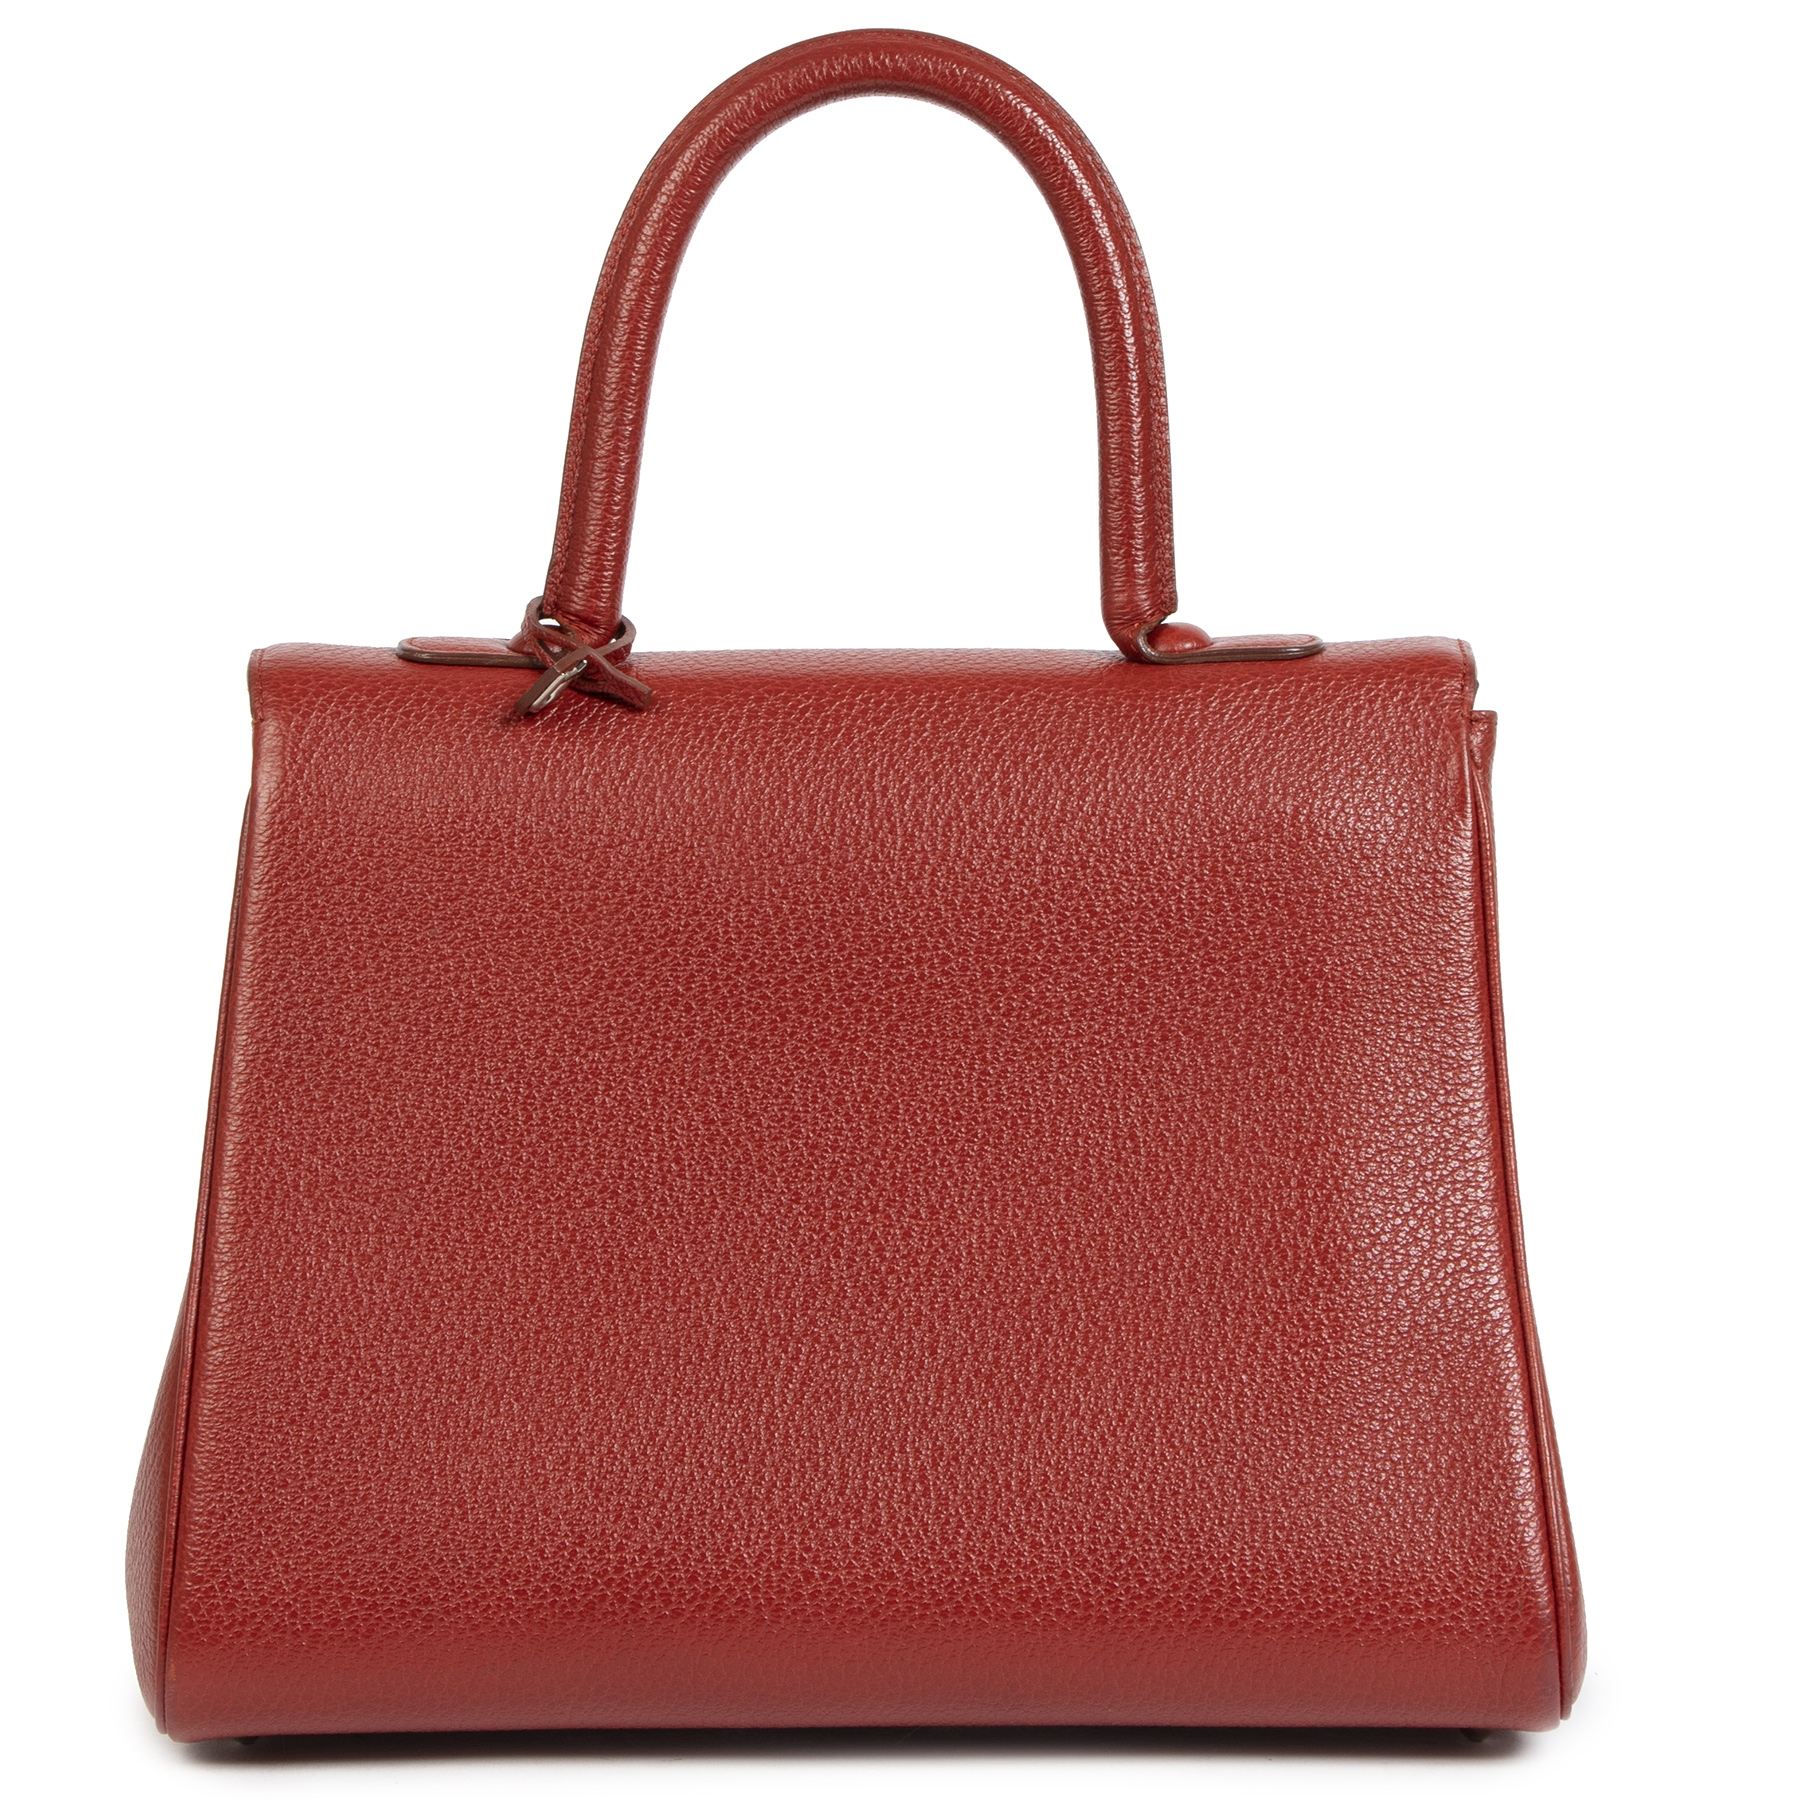 Delvaux Brillant MM red authentic secondhand at the right price online webshop LabelLOV luxury brand shop LabelLOV Antwerp Belgium